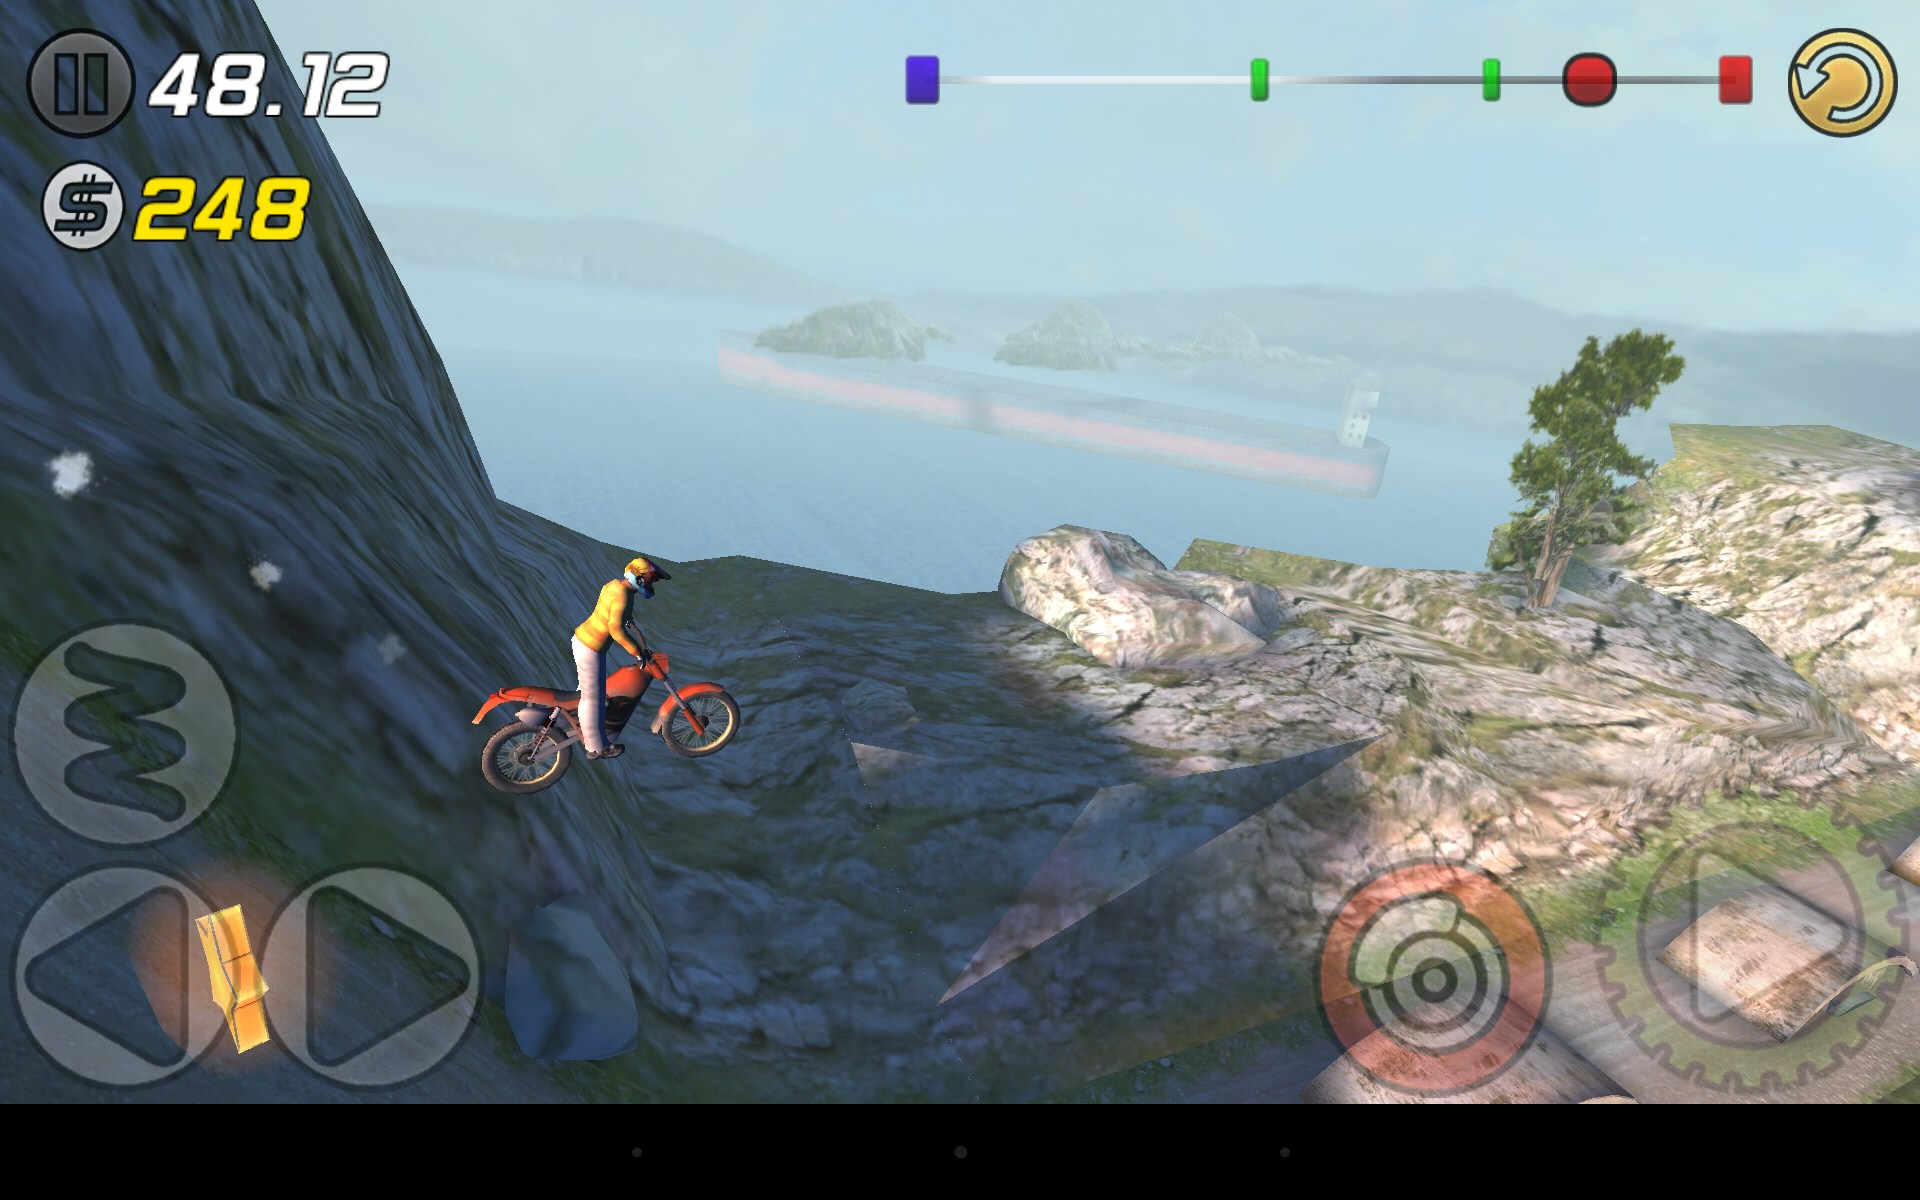 Trial Xtreme 3 For Nokia X 2018 Free Download Games For Android Smartphones